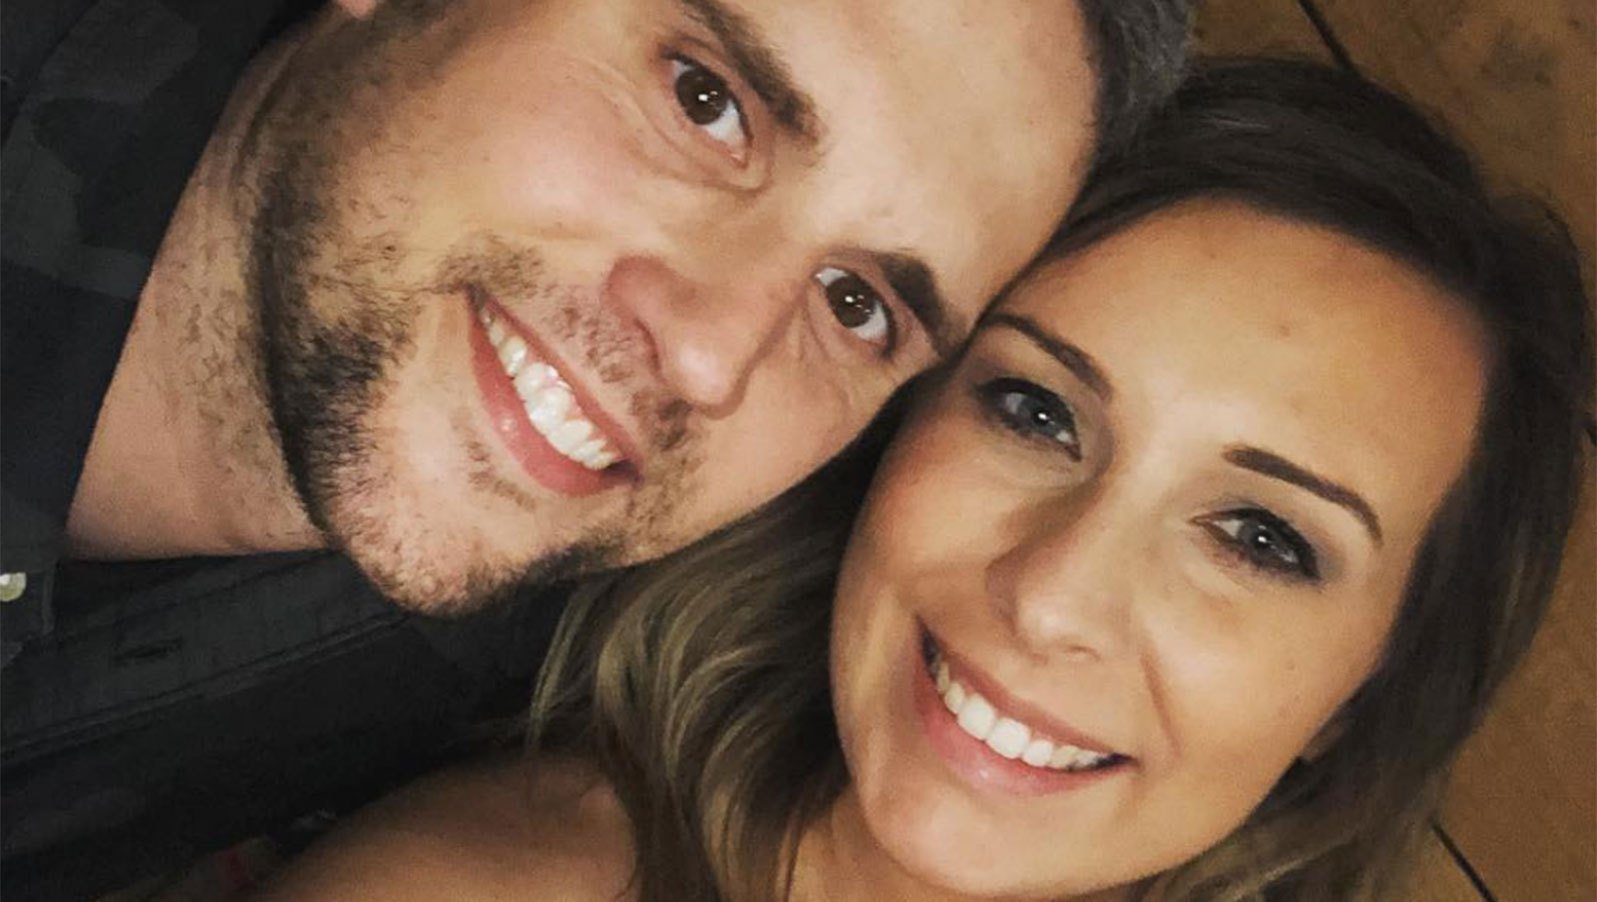 Mackenzie Edwards Shares Sweet Selfie With Husband Ryan Edwards for New Year's, Calls Him 'Best Lover'